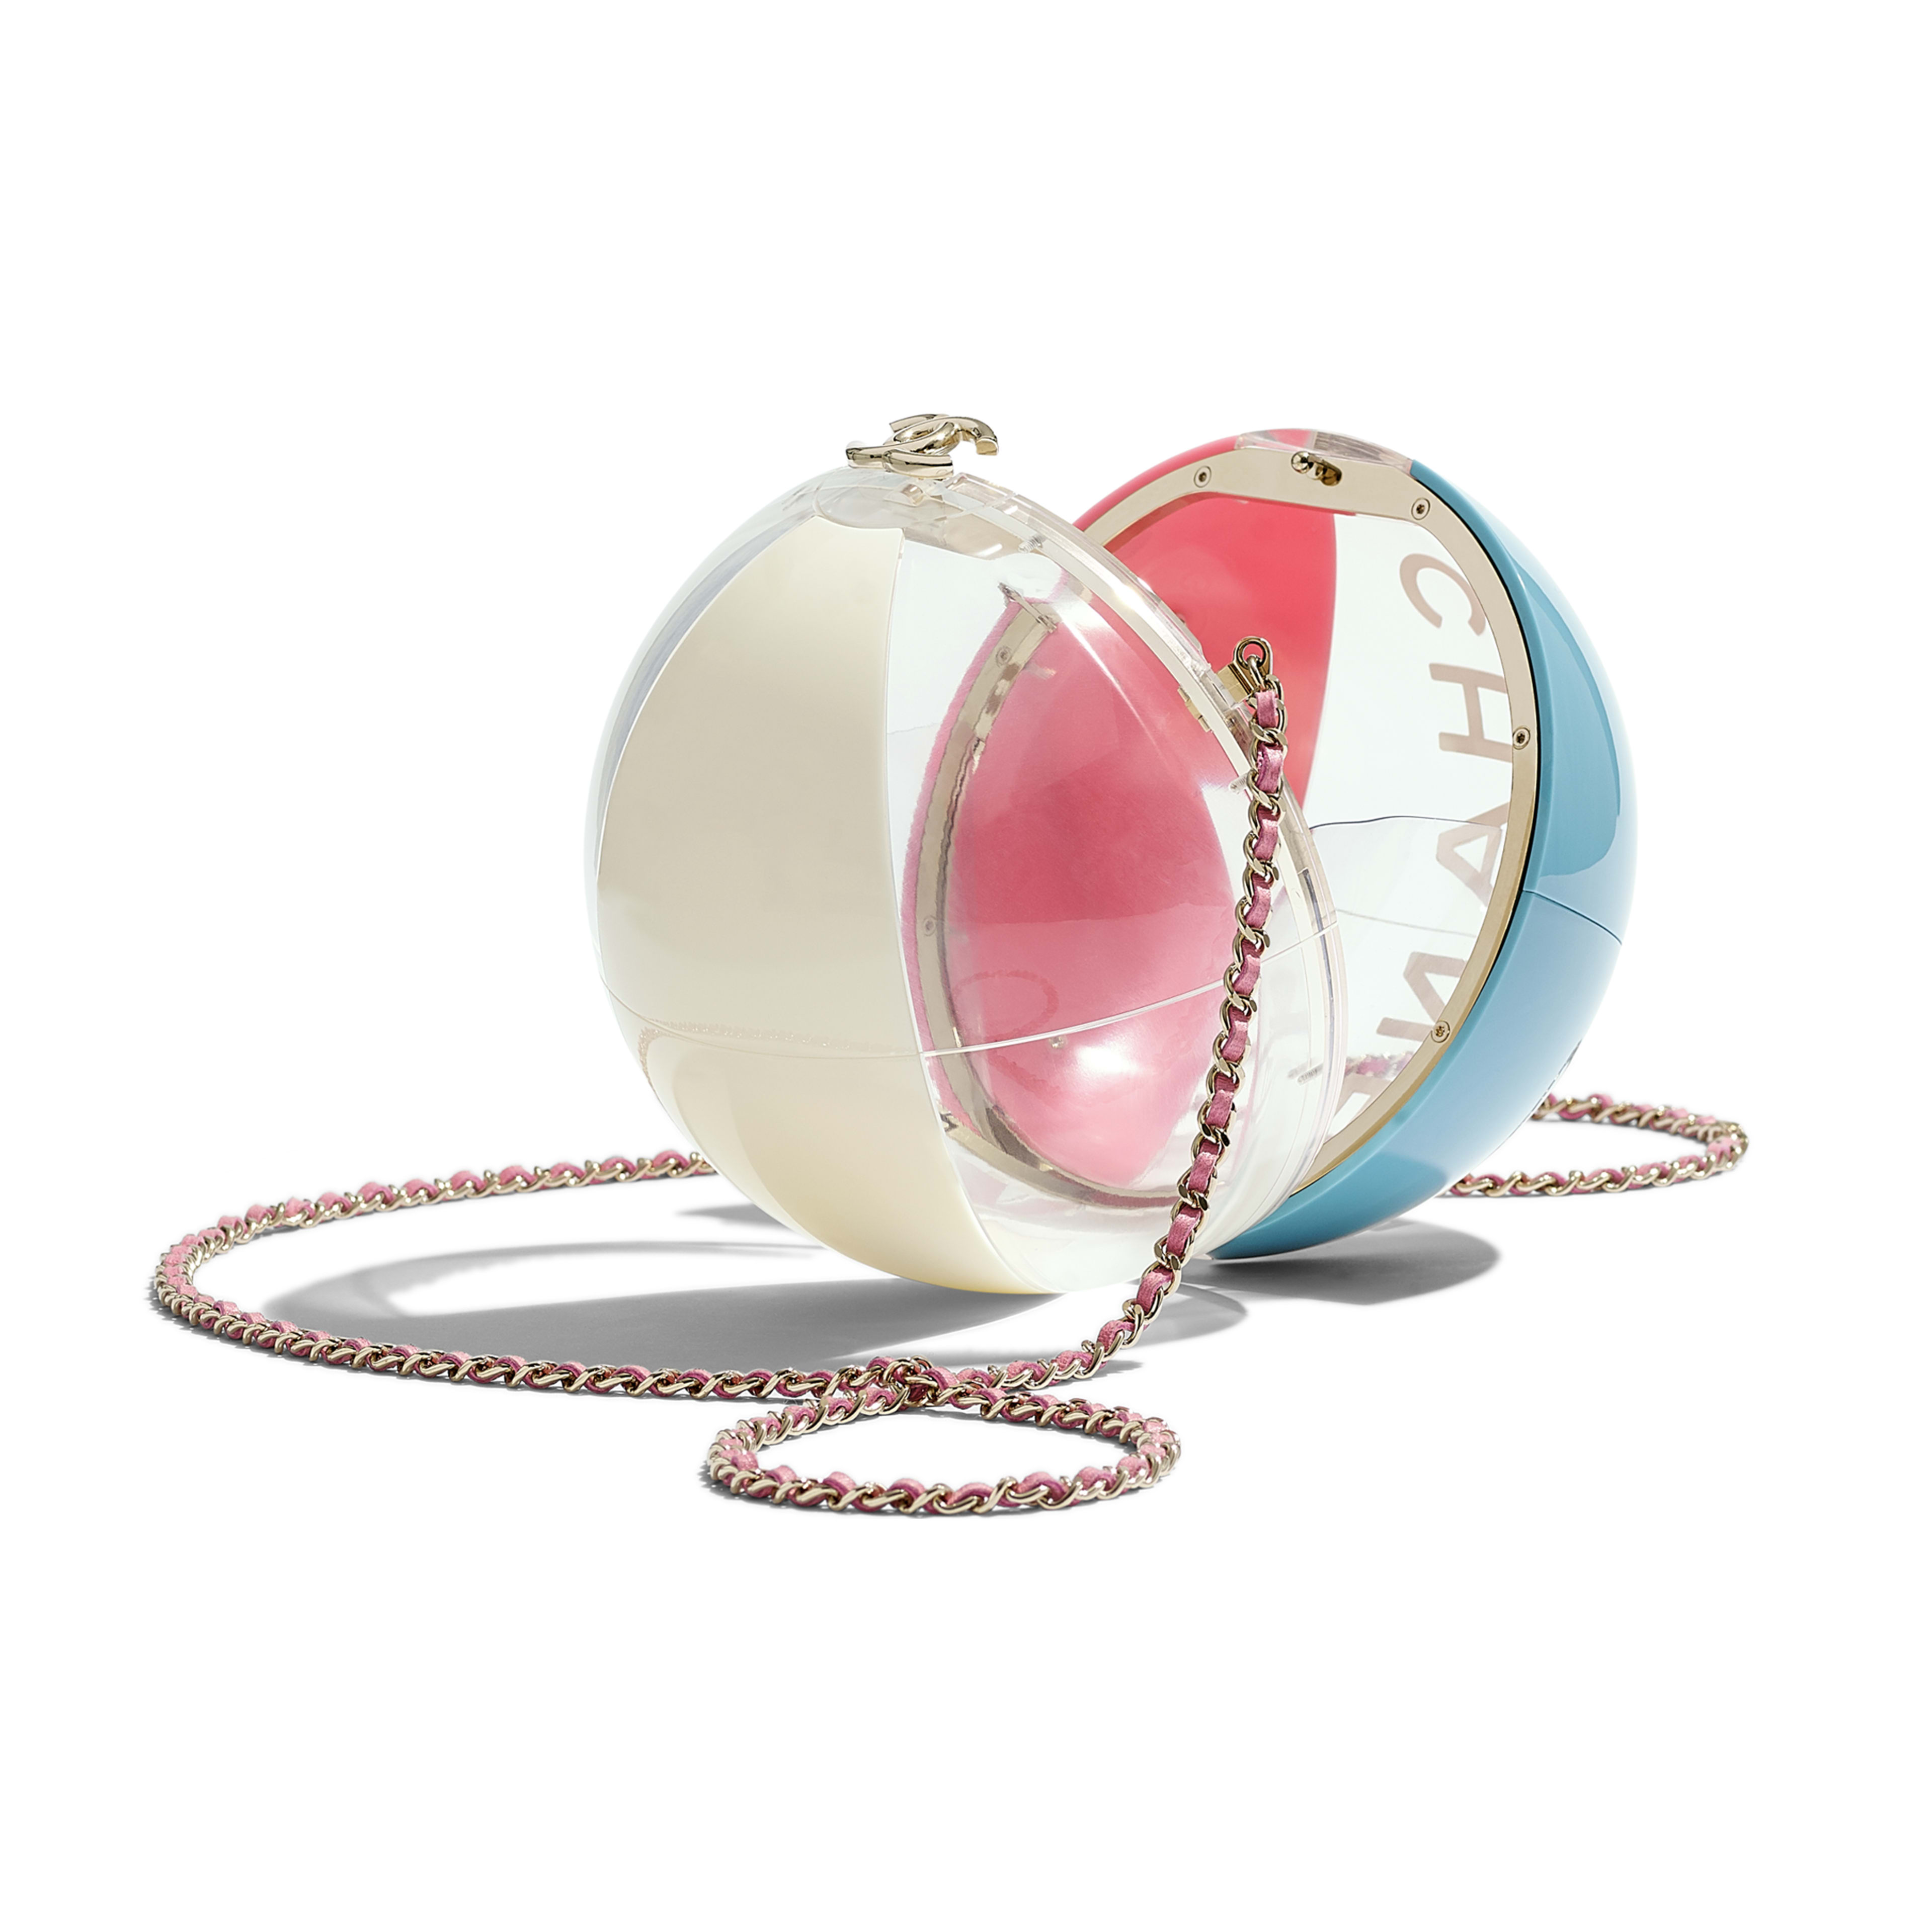 Beach Ball Minaudiere - Turquoise, Pink, White & Transparent - Resin & Gold-Tone Metal - Other view - see full sized version